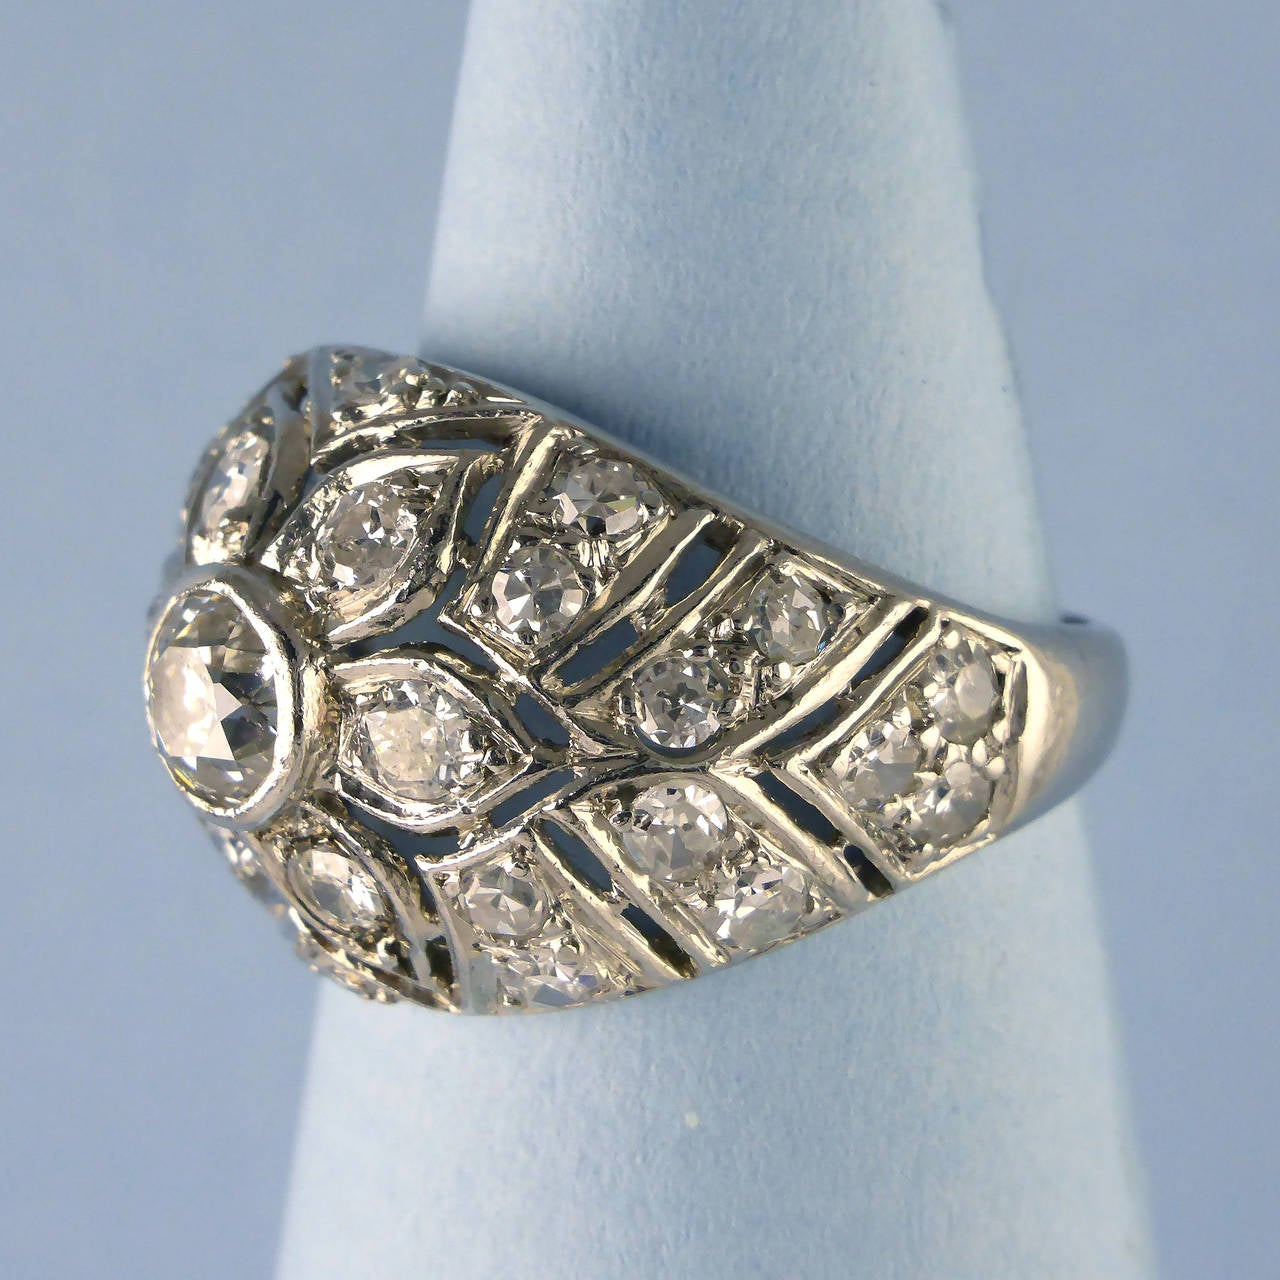 bombe jewelry white gold bombe ring circa 1950 for sale at 1stdibs 3122